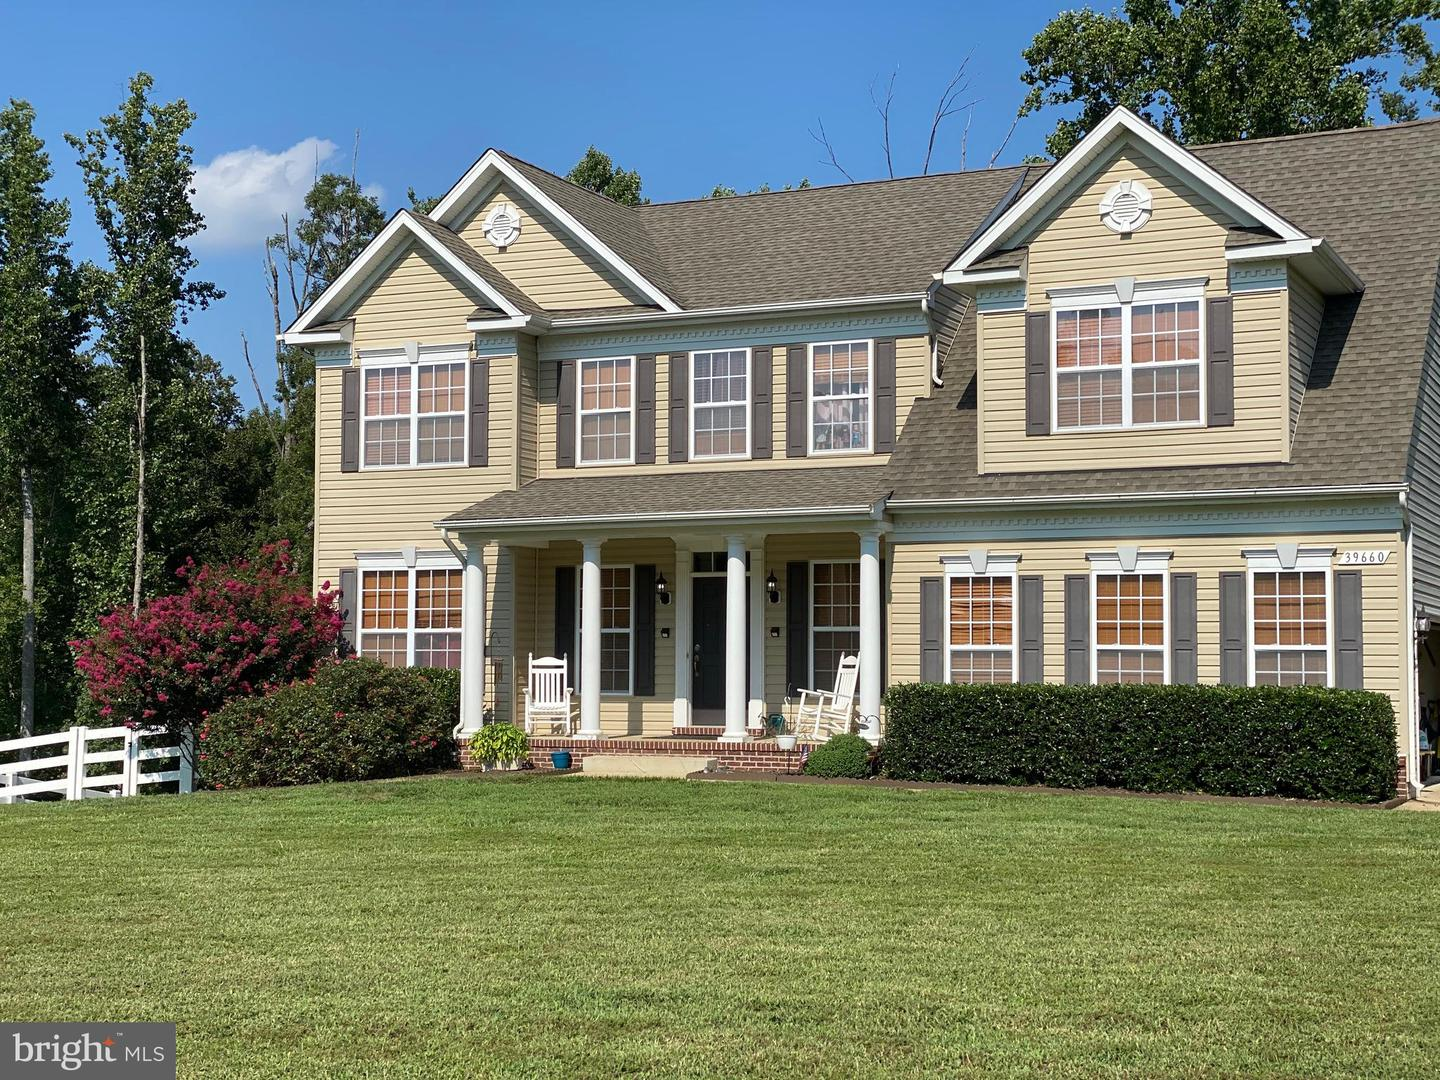 Photo of 39660 CLAIRES DR, MECHANICSVILLE, MD 20659